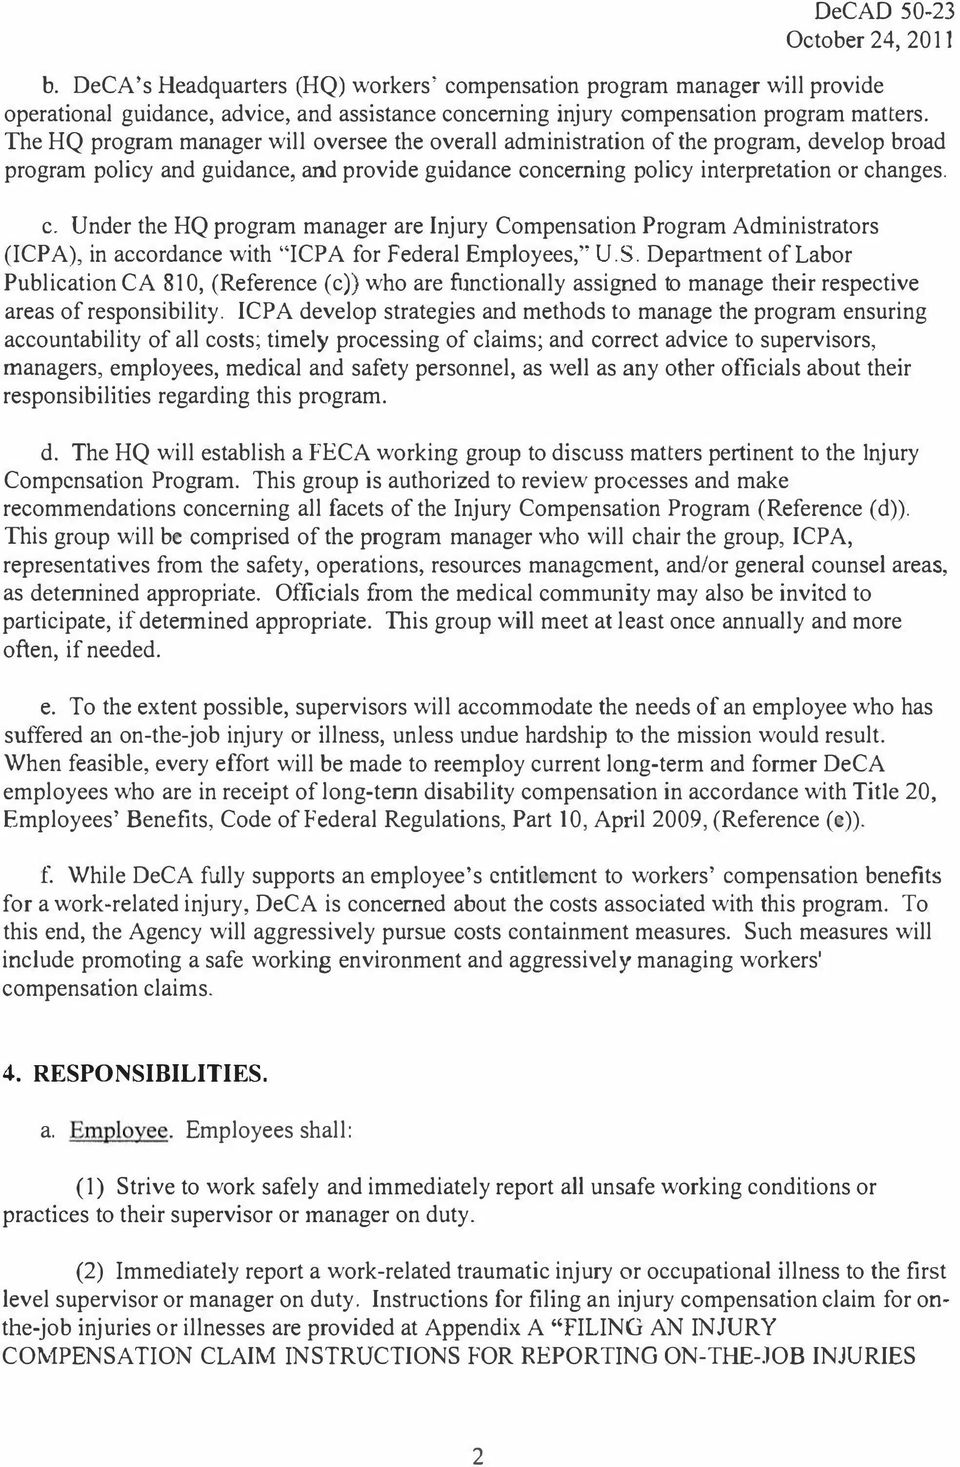 "ncerning policy interpretation or changes. c. Under the HQ program manager are Injury Compensation Program Administrators (ICPA), in accordance with ""ICPA for Federal Employees,"" U.S."